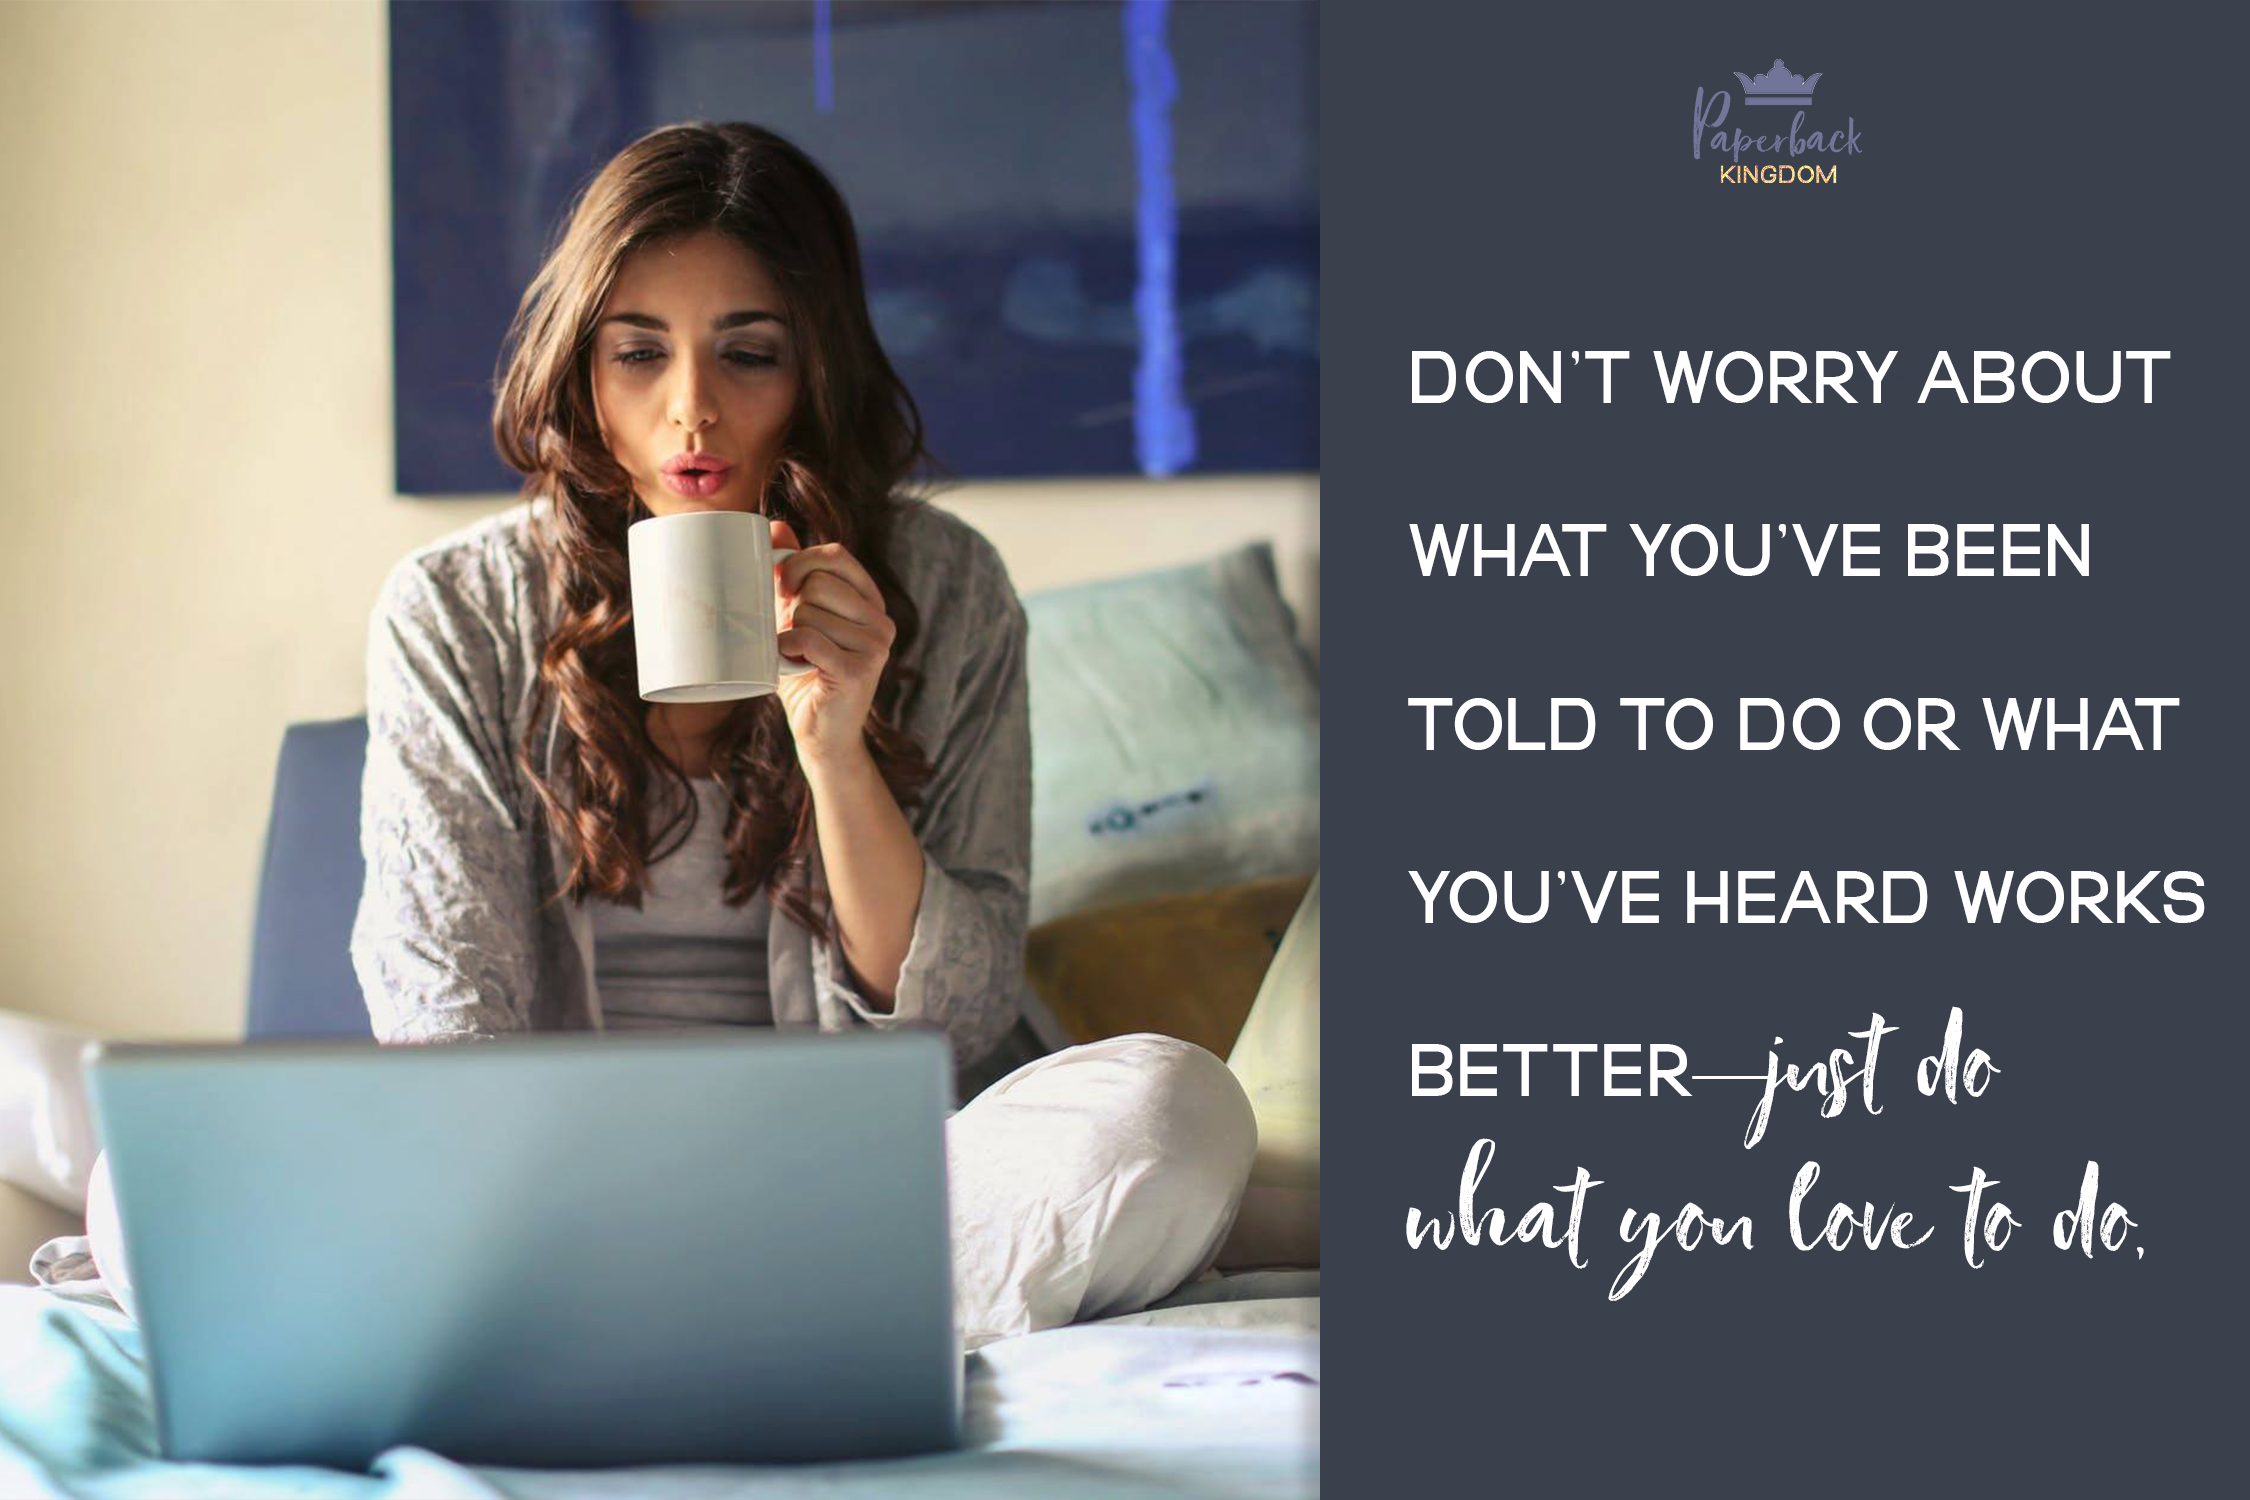 Don't worry about what you've been told to do or what you've heard works better—just do what you love to do,